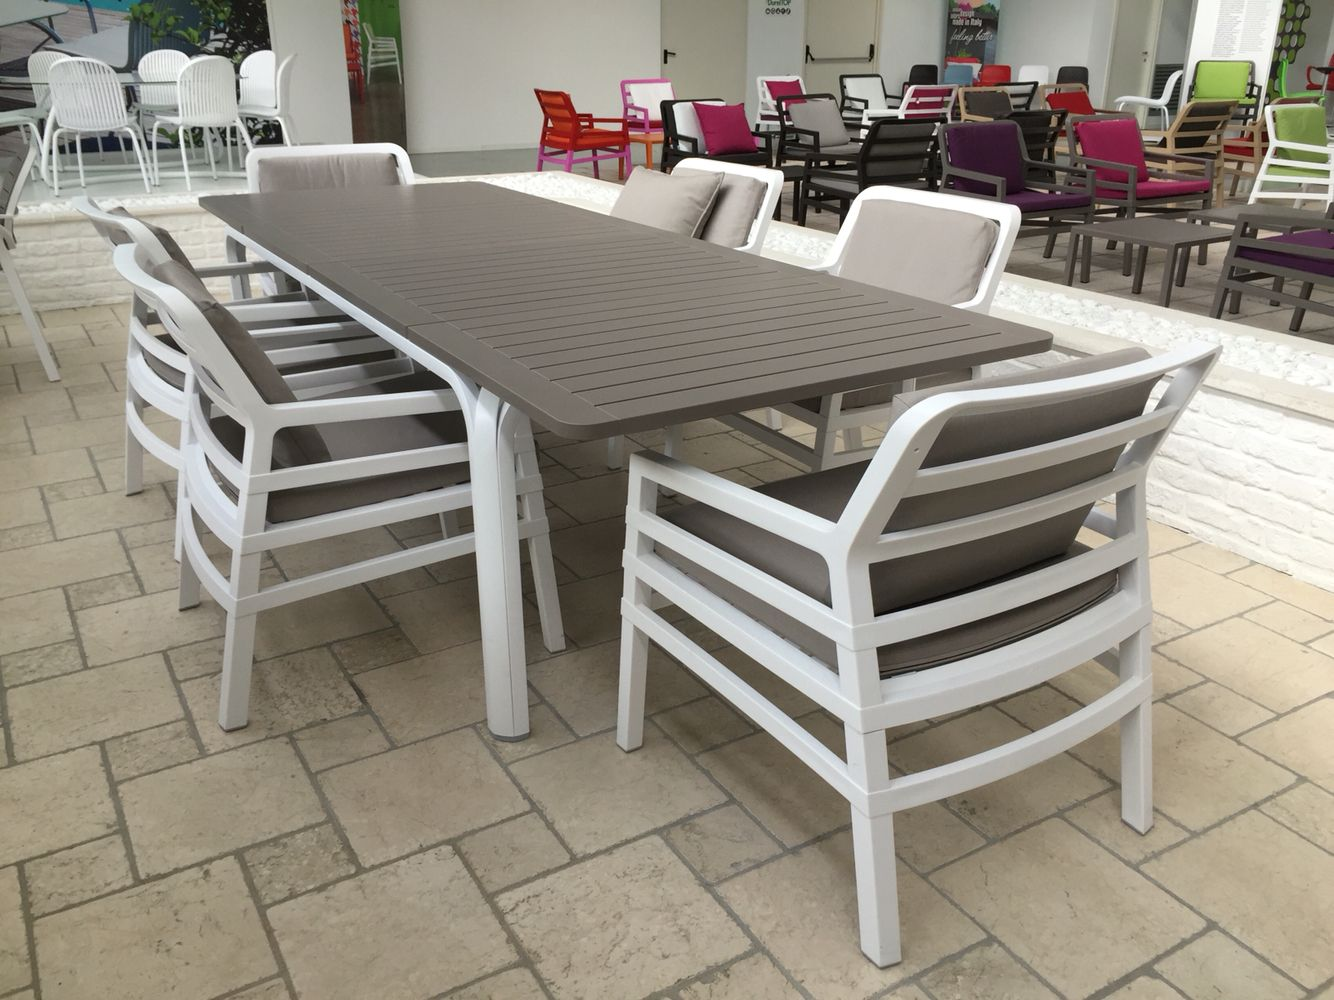 Nardi Alloro 210-280 Extension Table With Aria Chairs